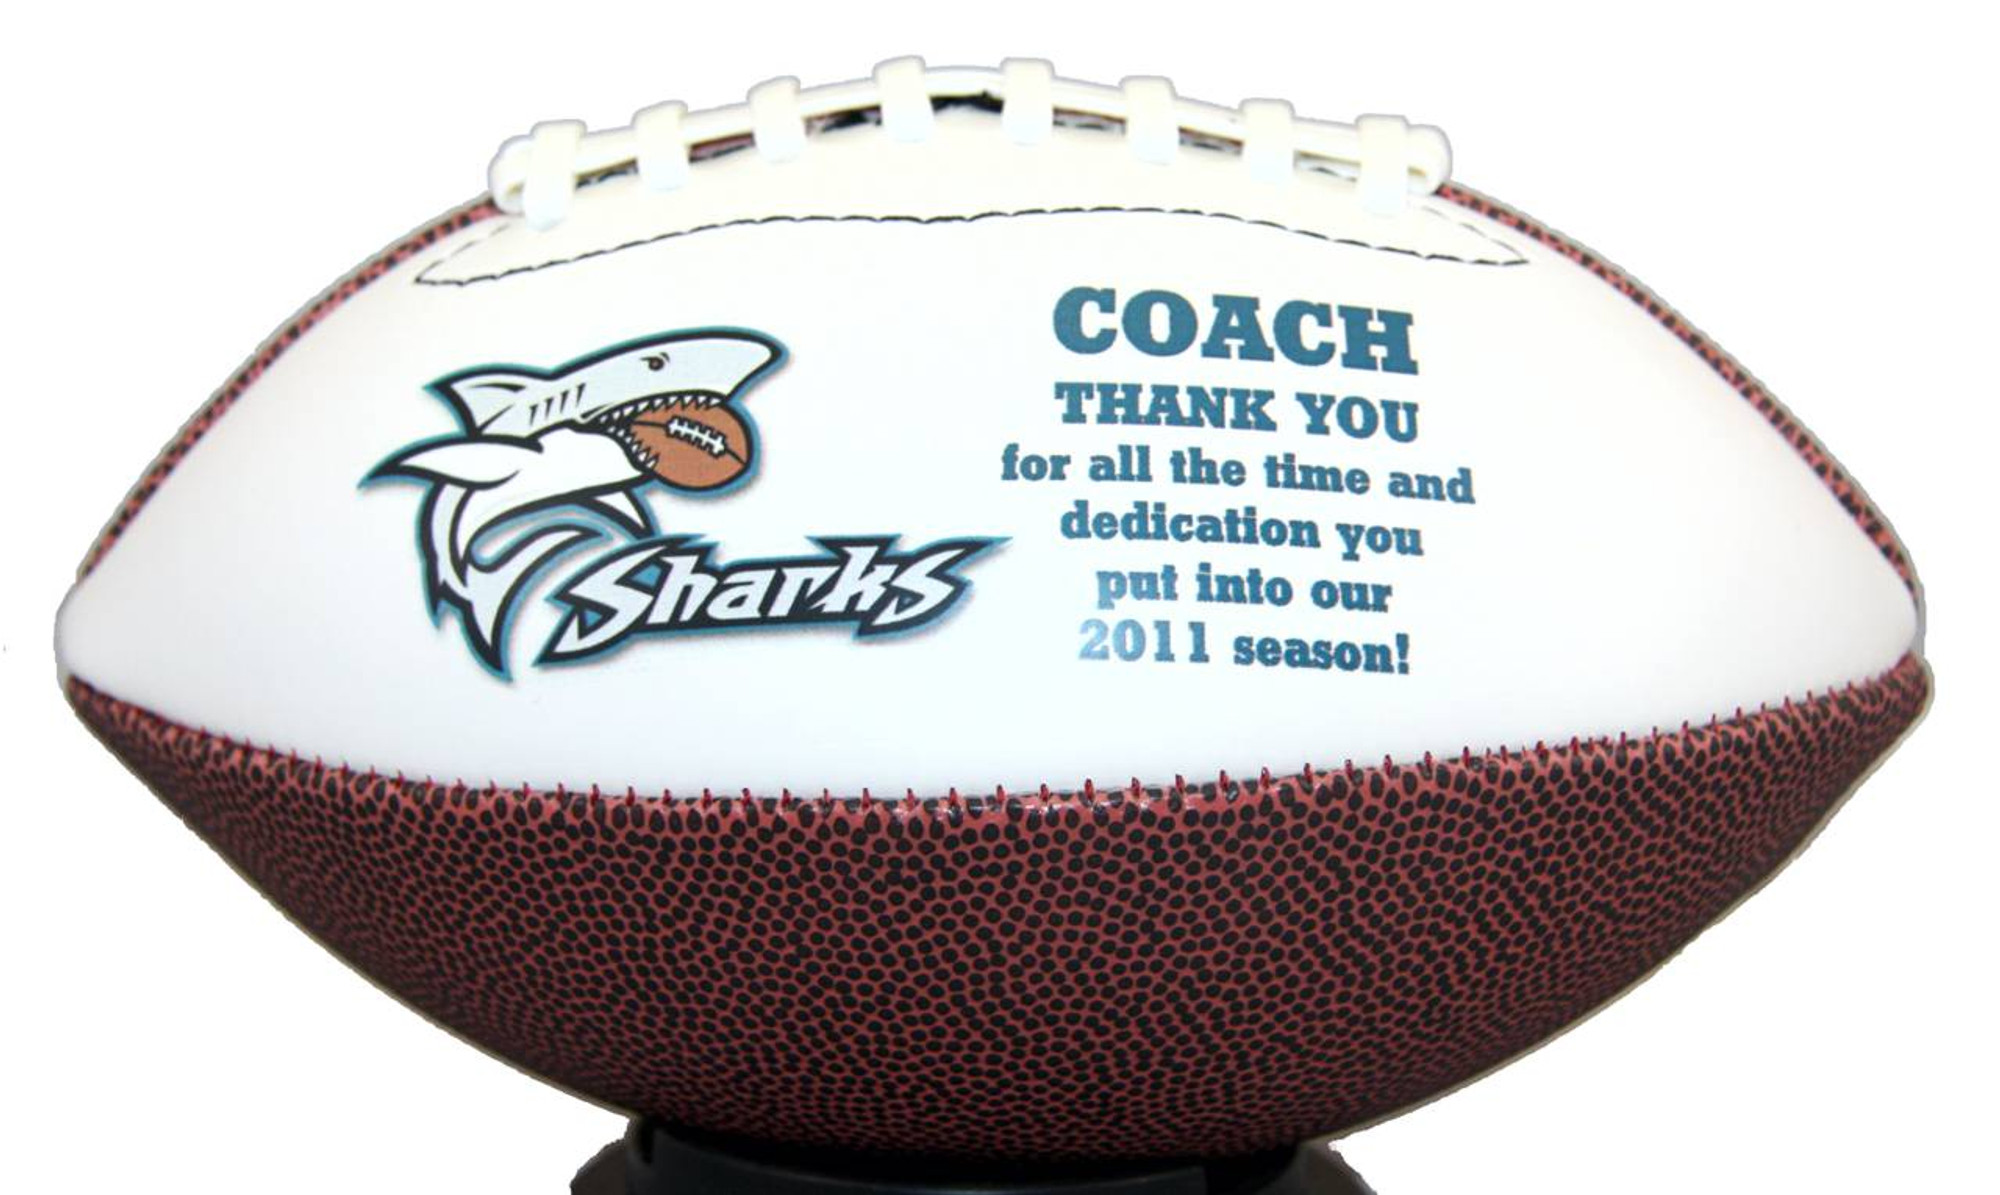 ... Thank your coach for their dedication to your team with our custom  footballs! Personalized ... 85eed68c6